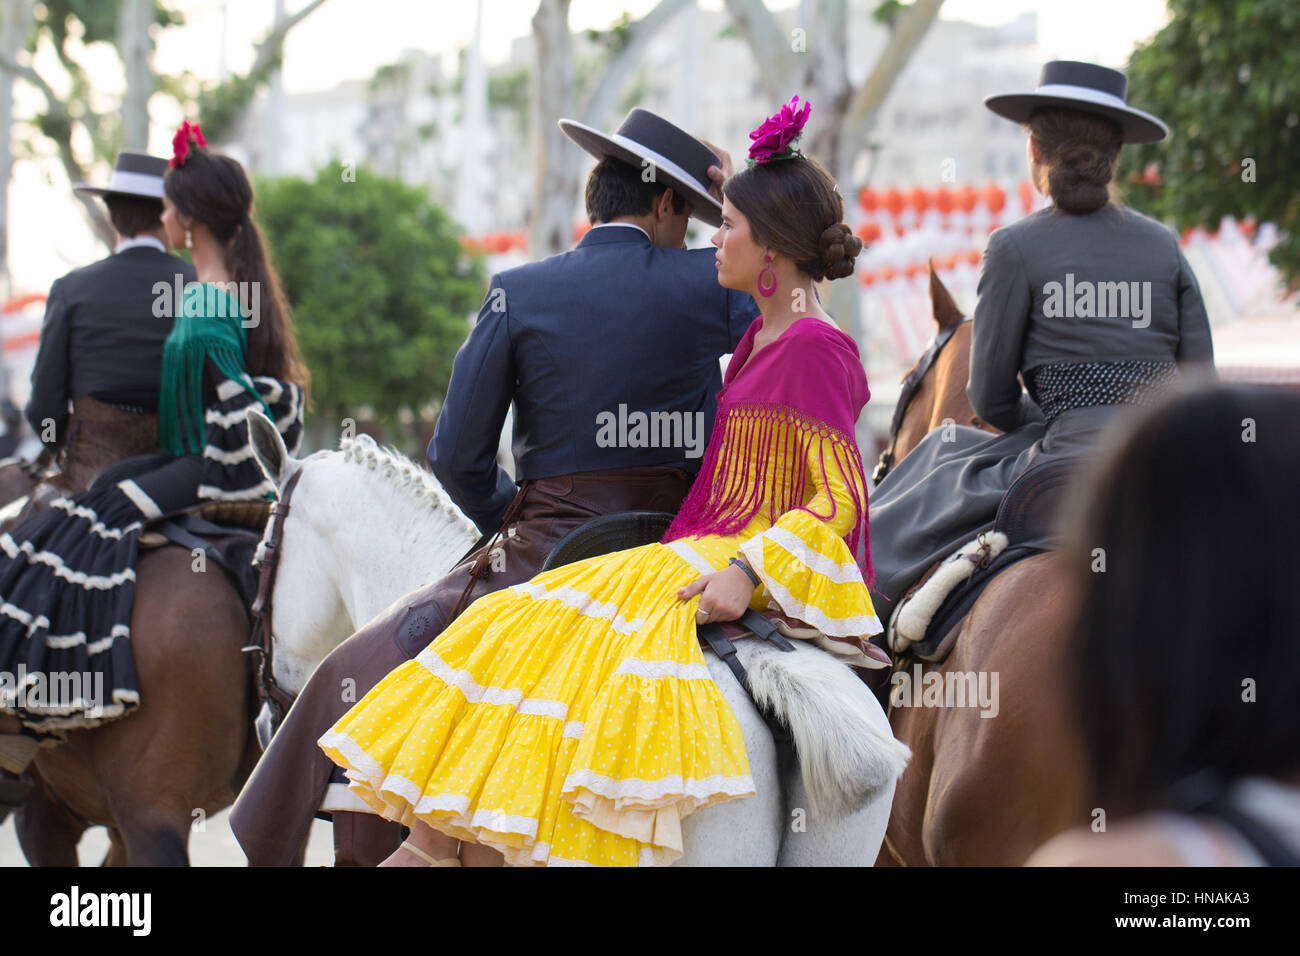 SEVILLE, SPAIN - APR, 25: people dressed in traditional costumes riding horse at the Seville's April Fair on - Stock Image